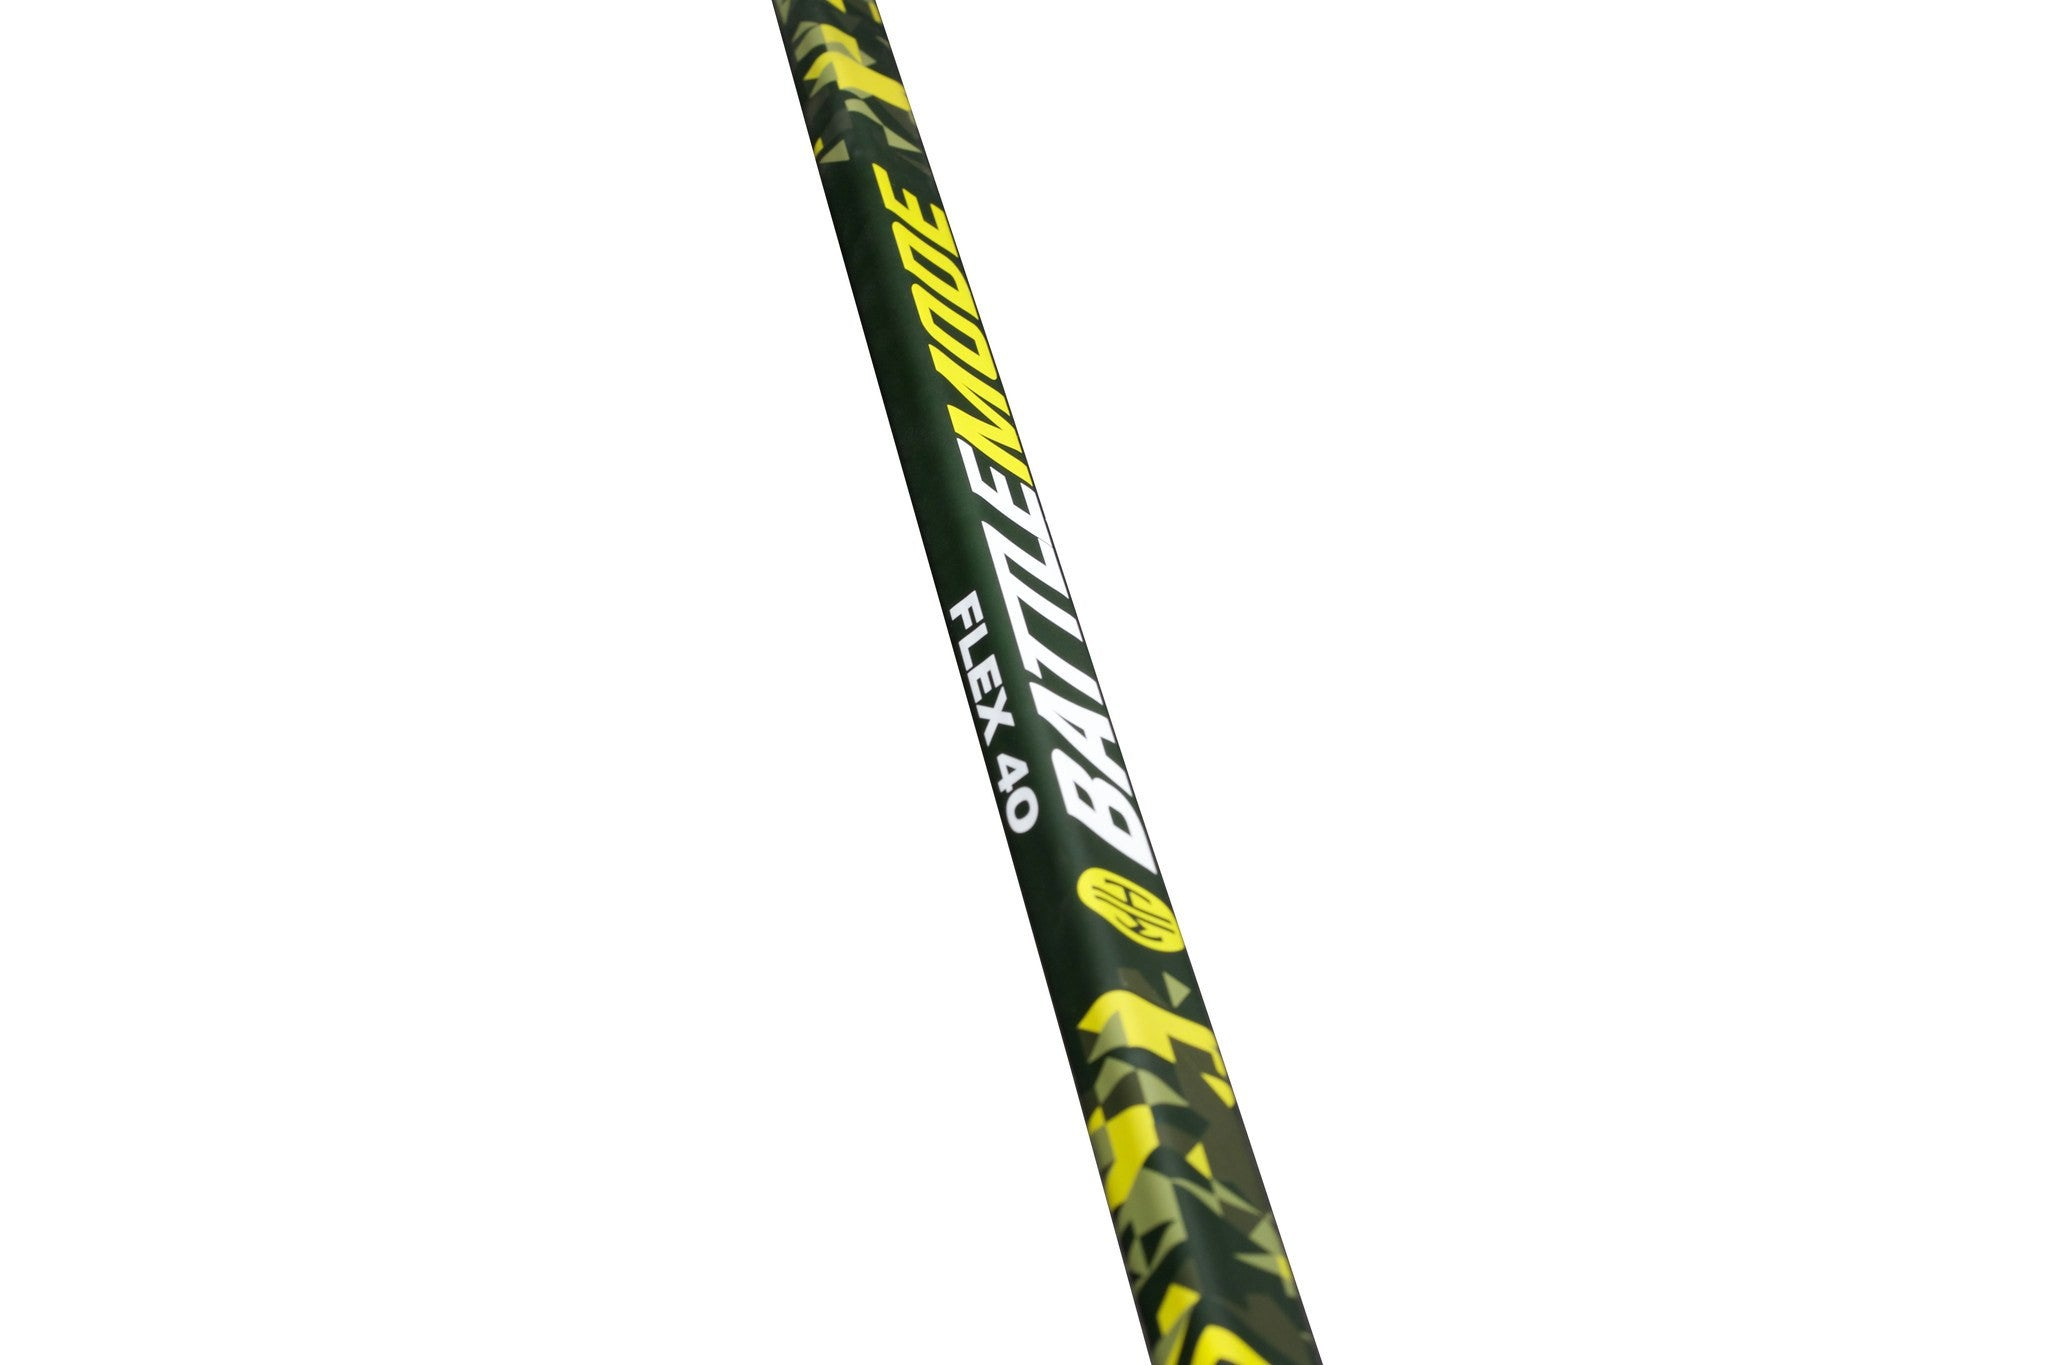 ffa400f5413 BattleMode 40 Flex Junior Hockey Stick Shaft